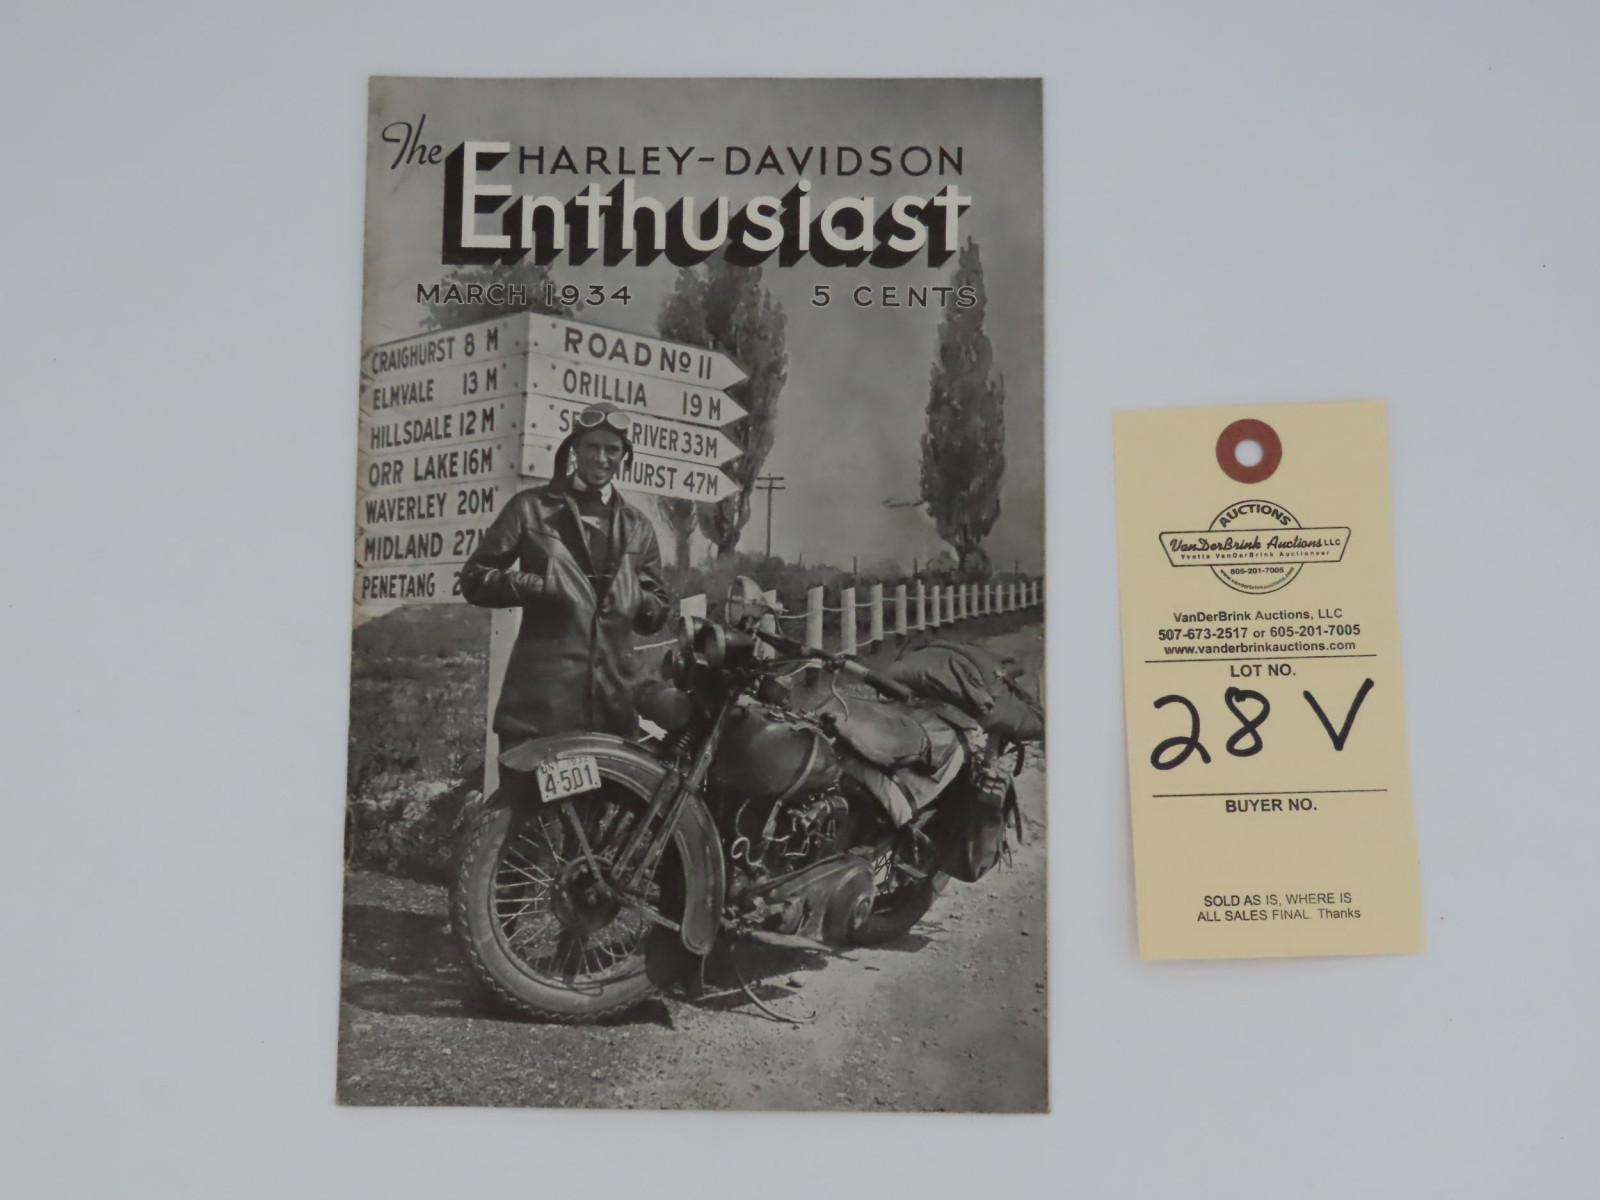 The Harley-Davidson Enthusiast - Image 1